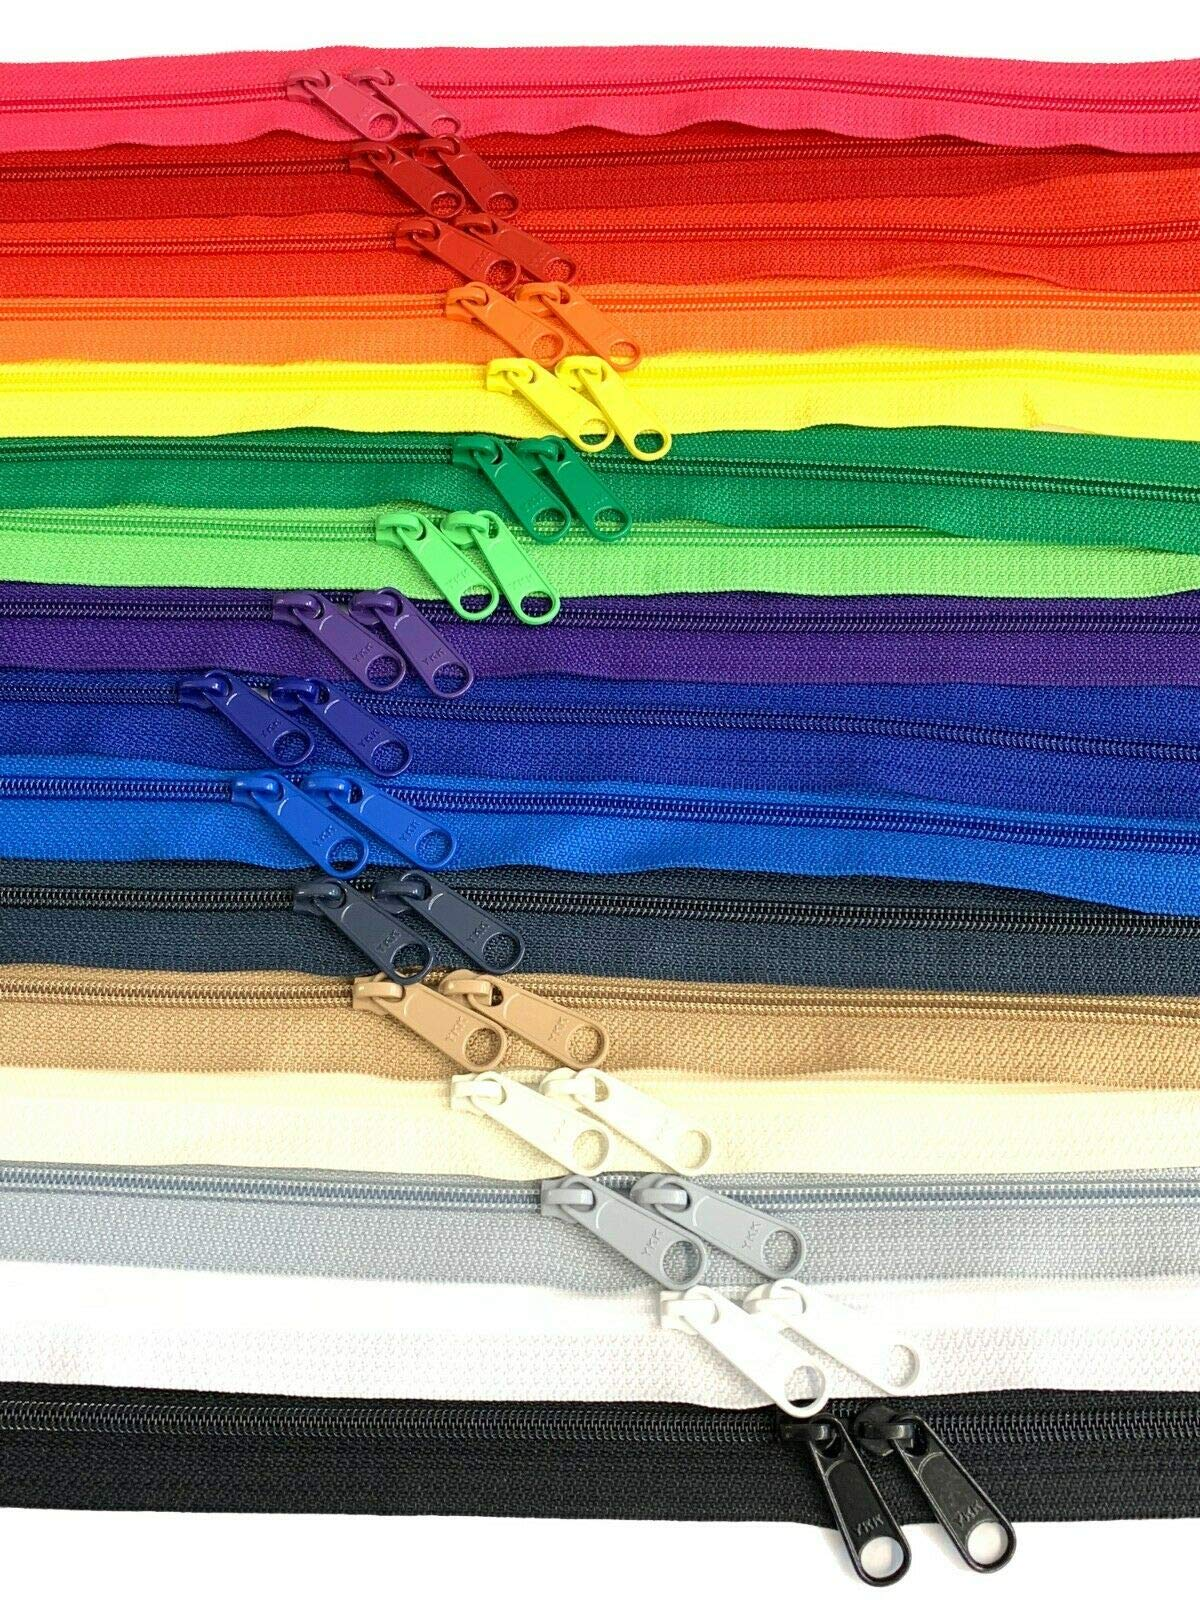 18 Pieces 30 Inches Double Slide Zipper YKK #4.5 Coil with Two Long Pull Head to Head Closed Ended on Both Sides 18 Assorted Colors - Made in USA by YKK